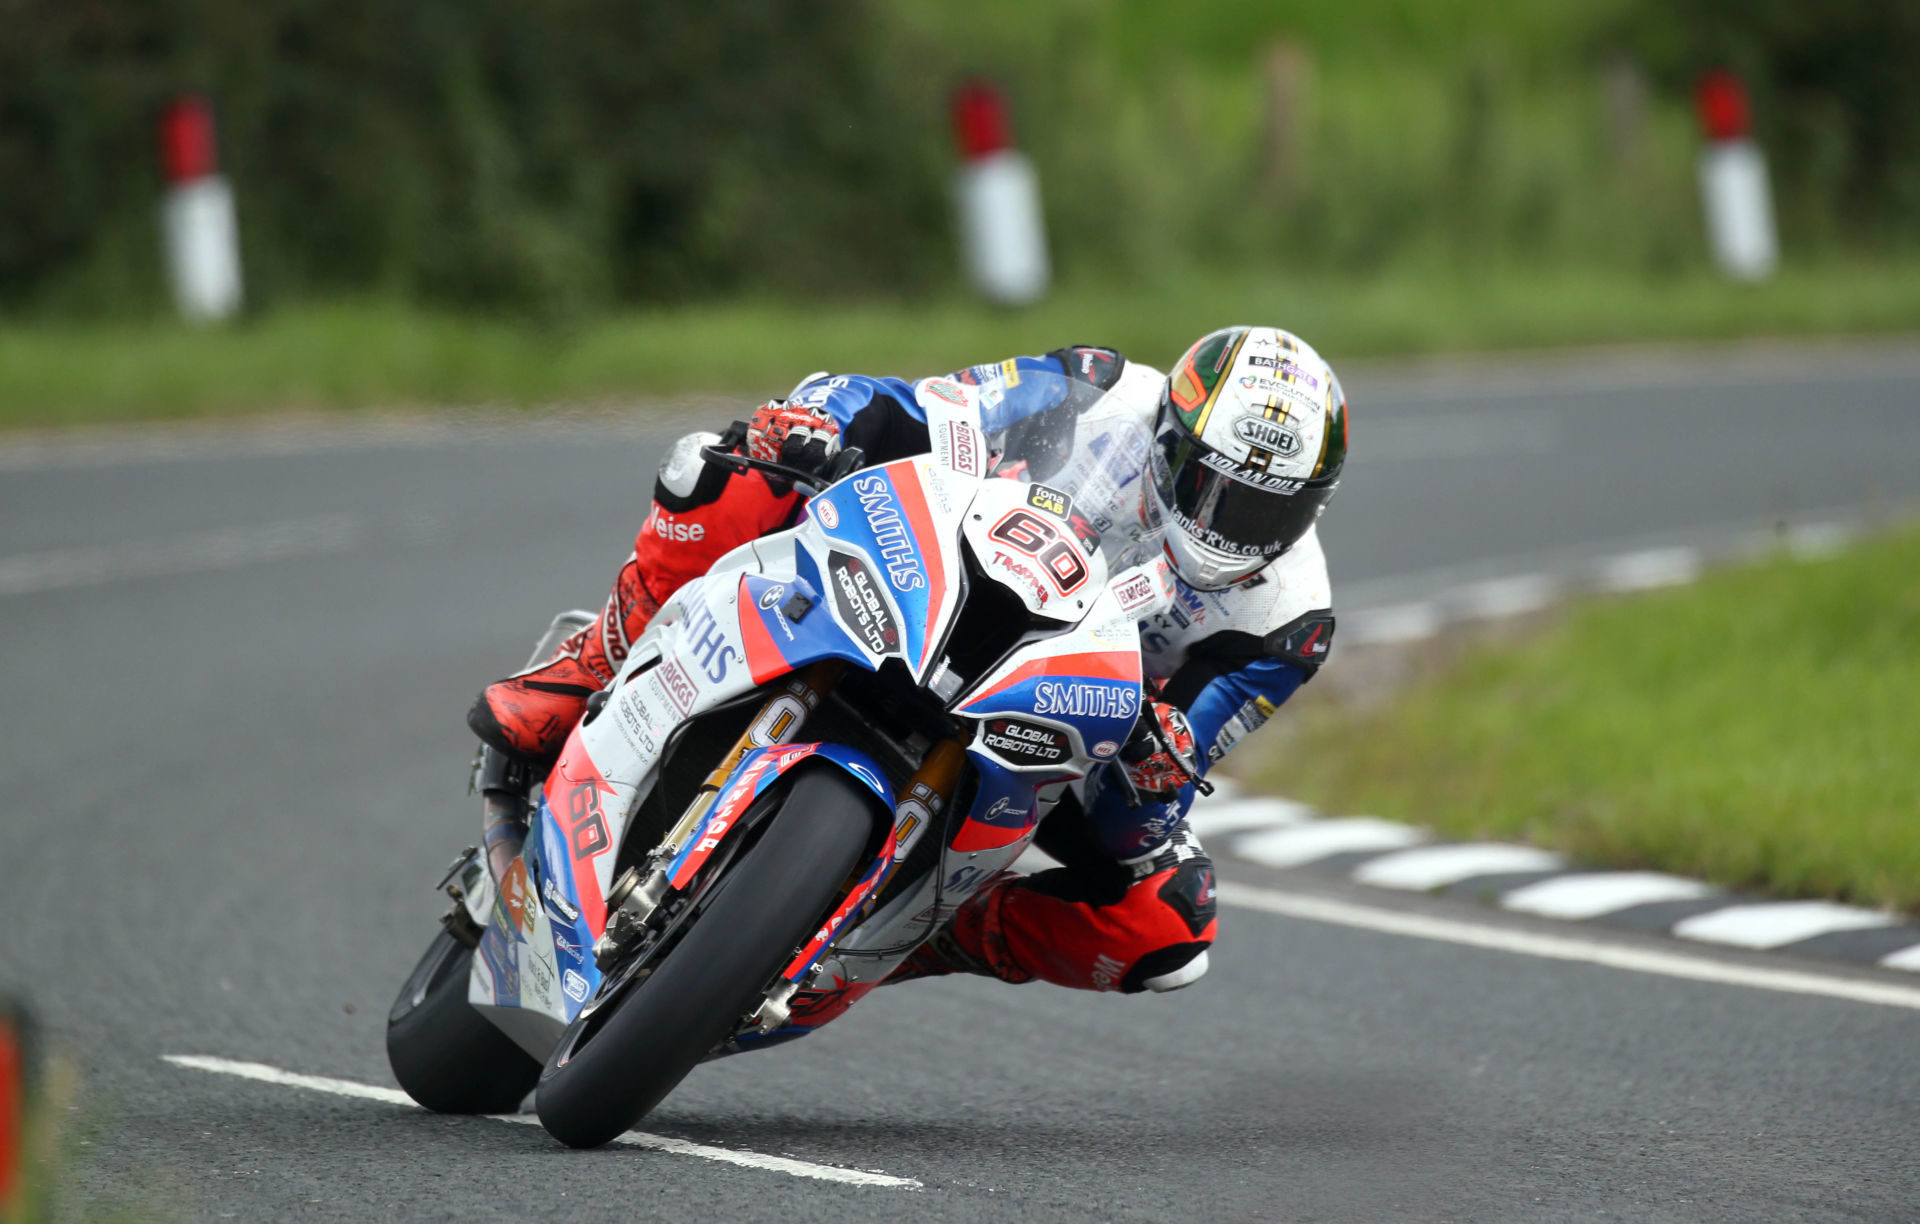 Peter Hickman (60) in action during the 2019 Ulster Grand Prix. Photo by Pacemaker Press International, courtesy of UGP Press Office.